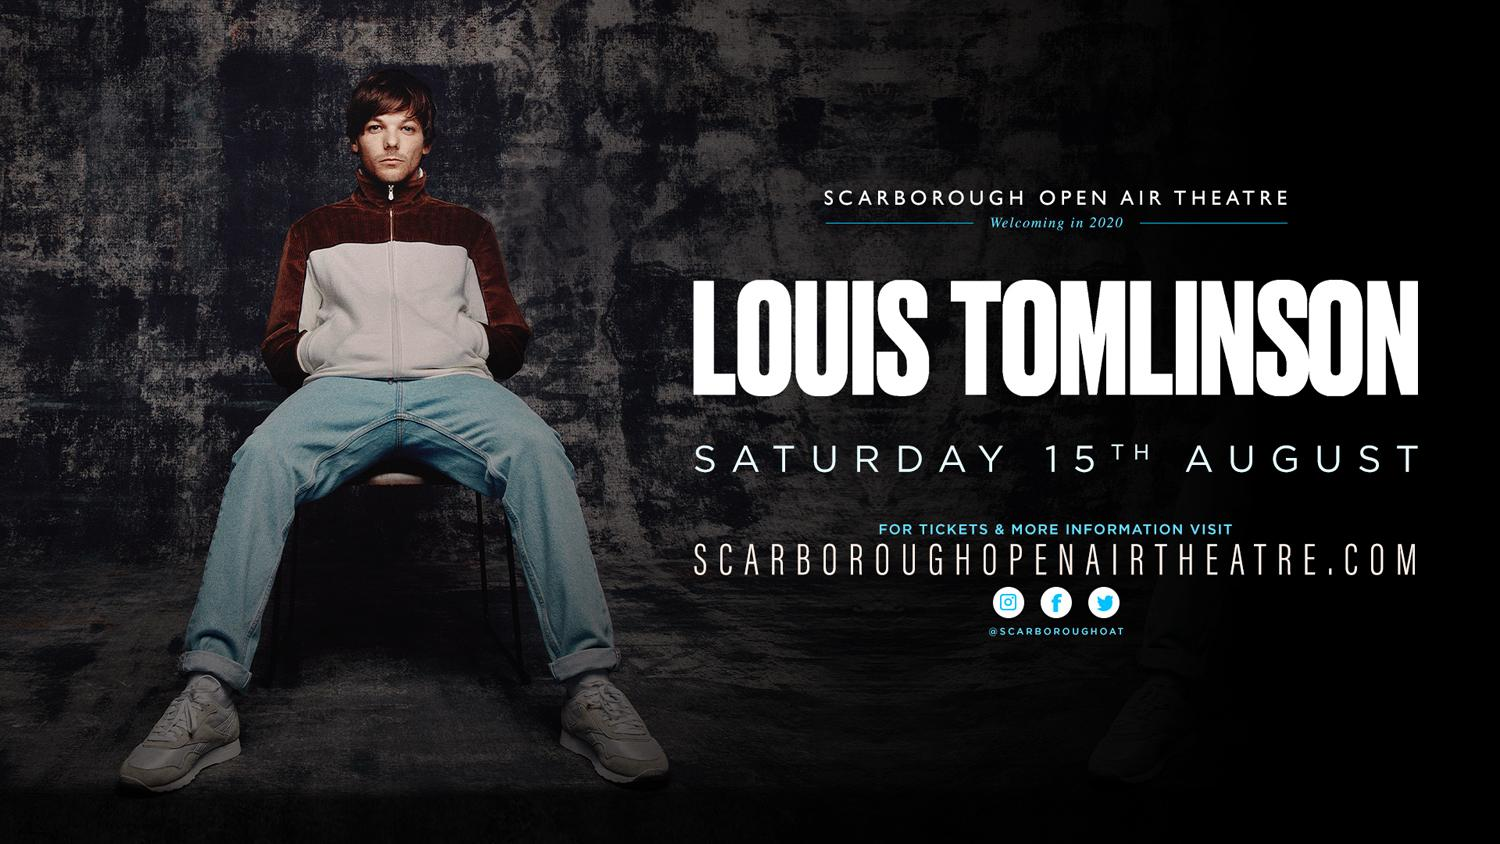 Louis Tomlinson show promotional graphic